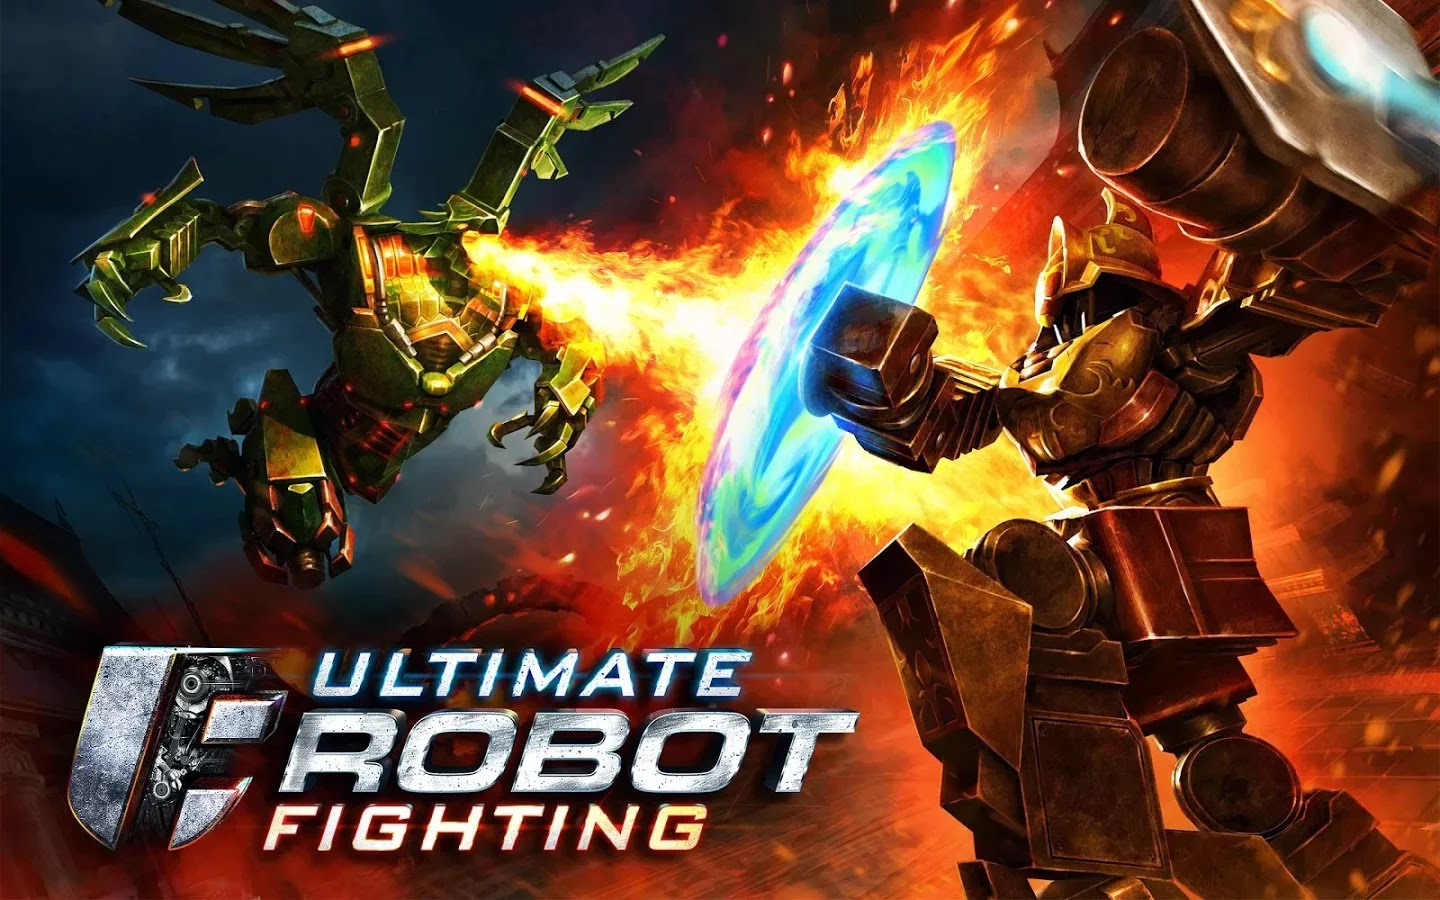 Ultimate Robot Fighting v1.0.0 Mod